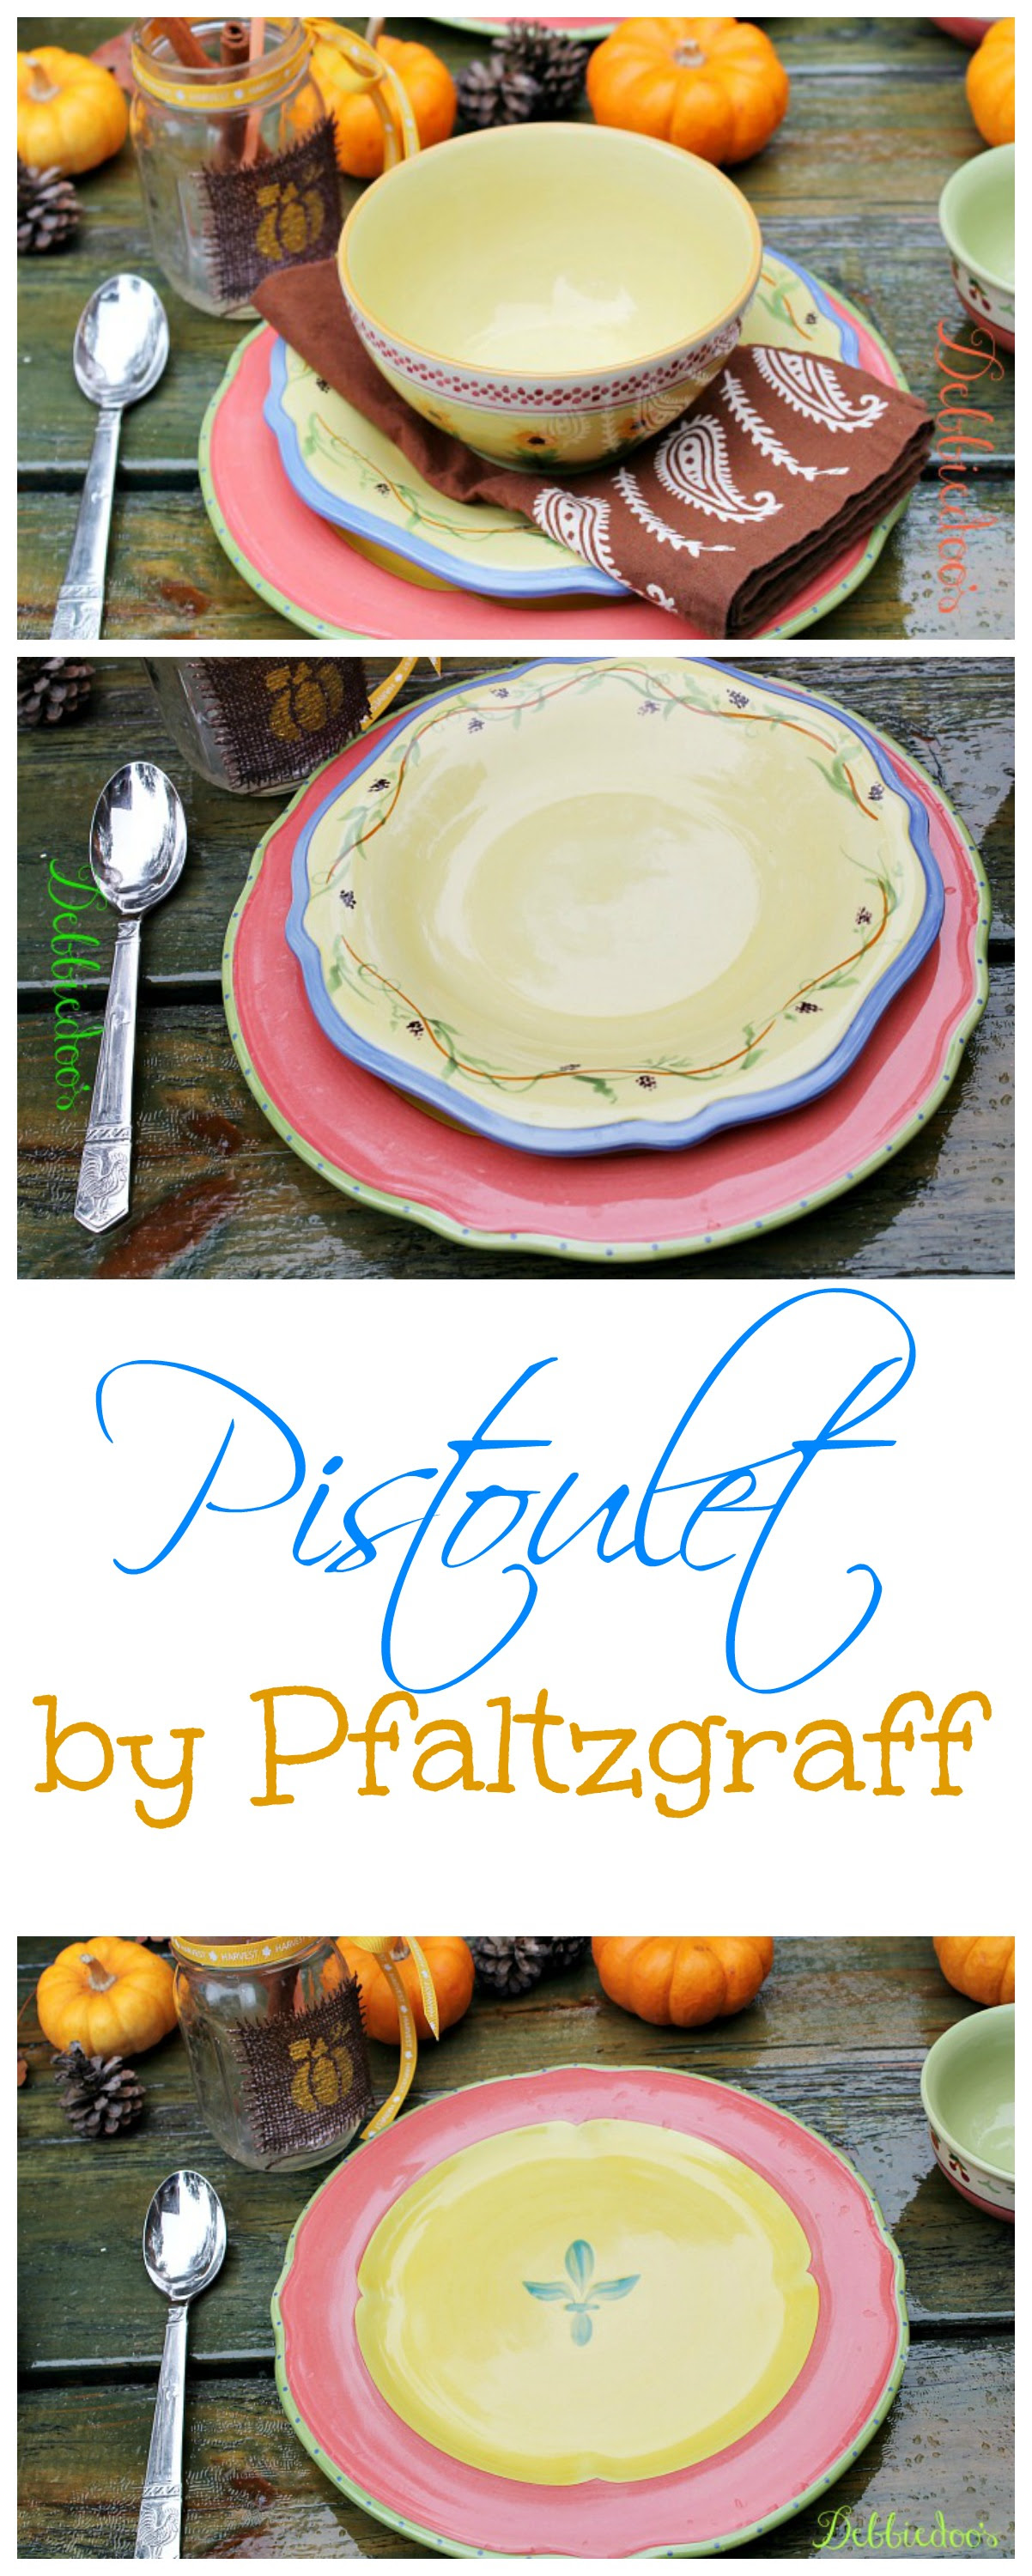 Pfaltzgraff dishes